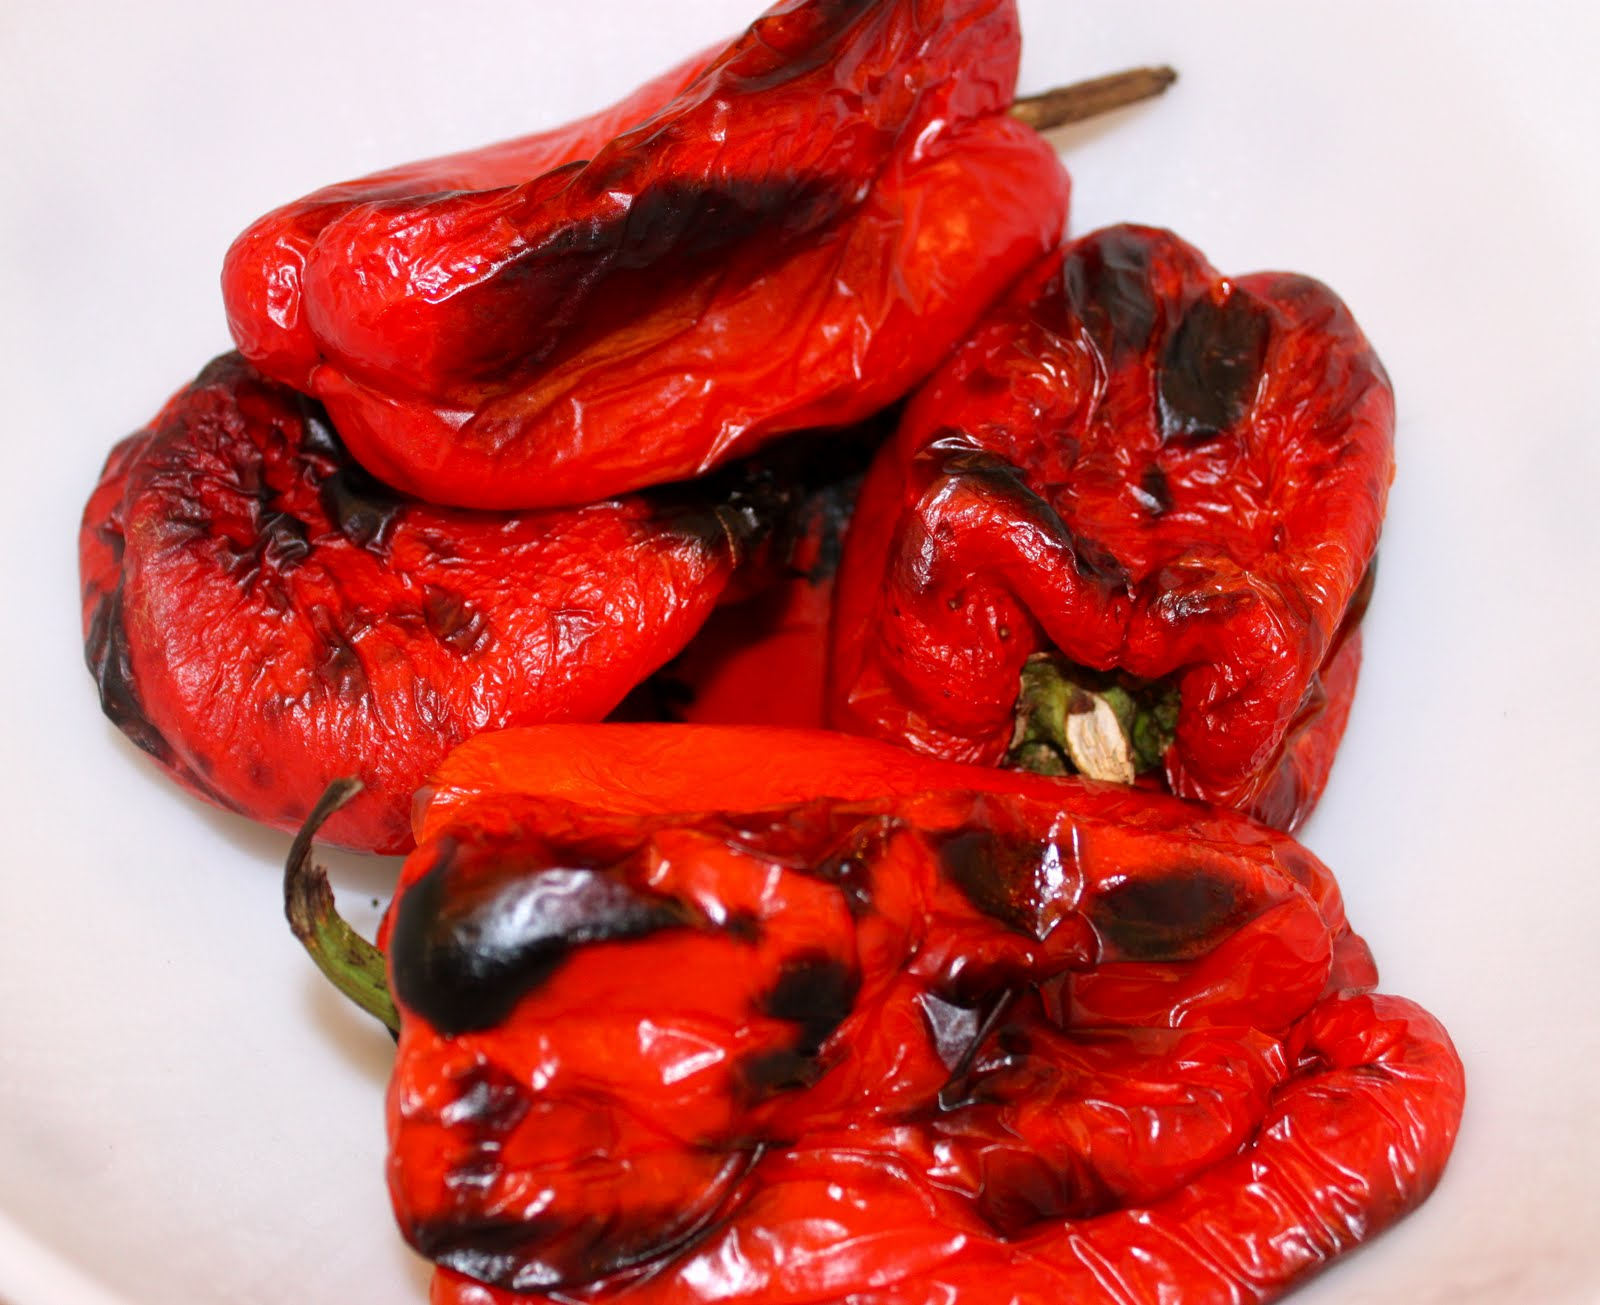 Cucina & Amore Piquillo Peppers Roasting Red Peppers And Green Yellow Or Orange La Bella Vita